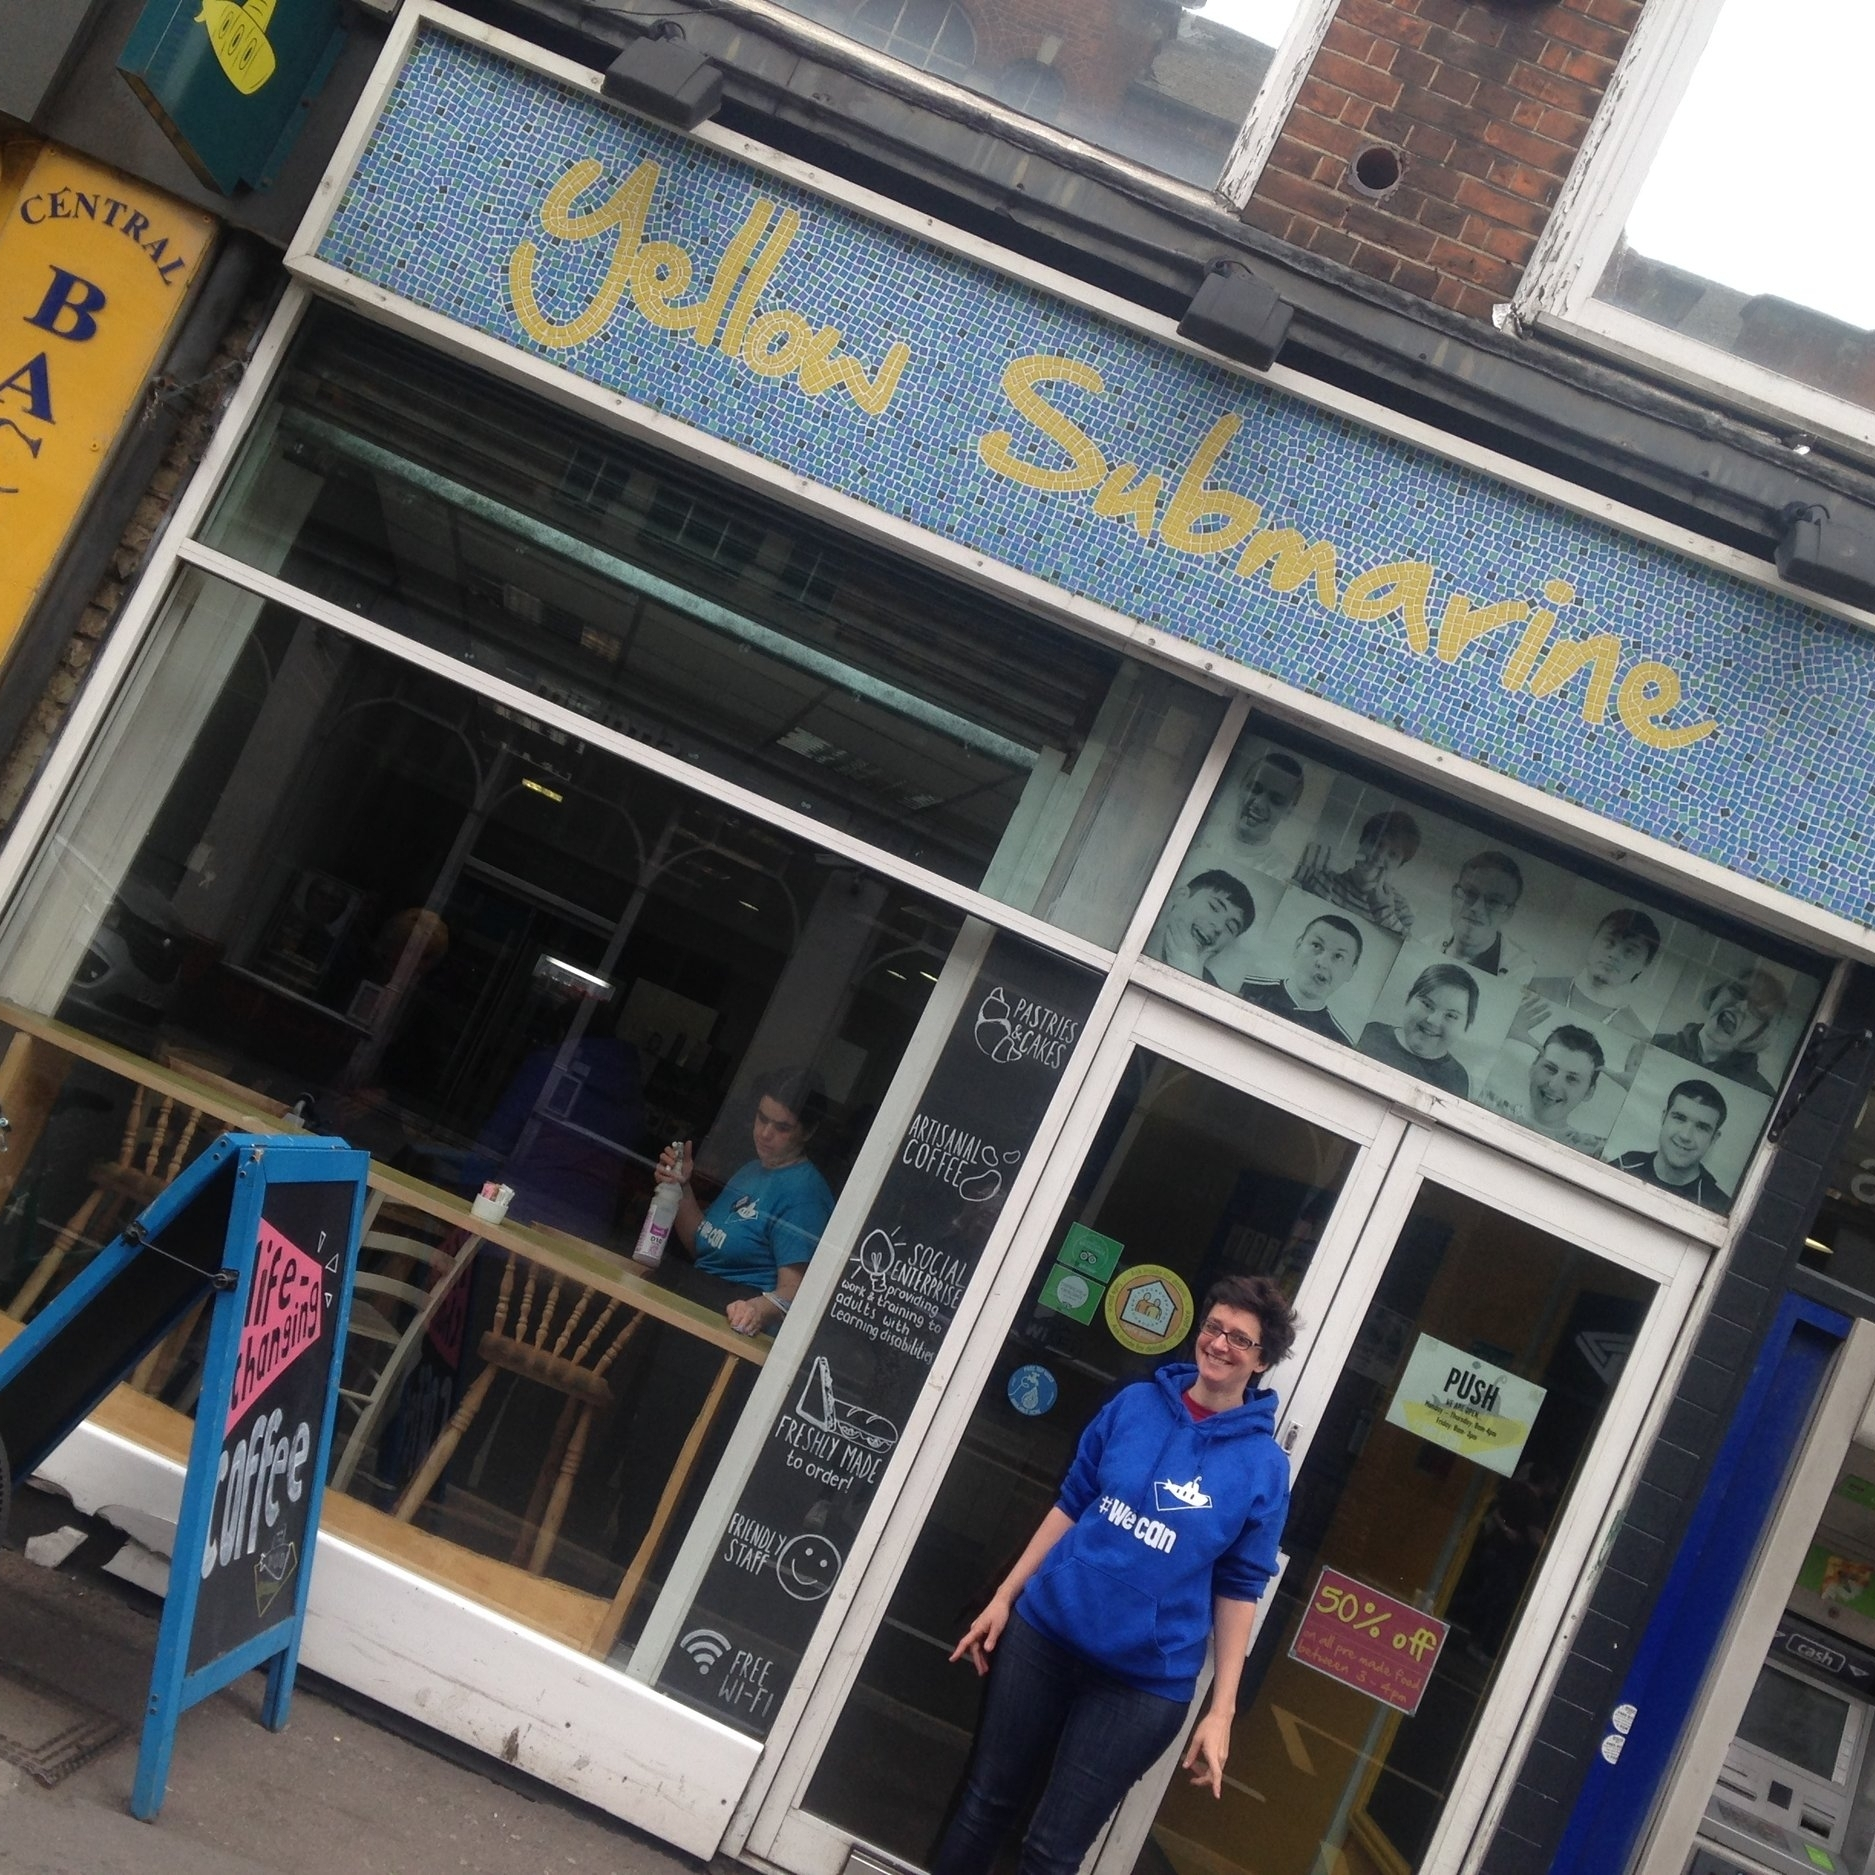 YELLOW SUBMARINE - Wonderful social enterprise, the Yellow Submarine is the latest outlet to join the Refill Oxford network in Oxford. Thanks, Charlotte!12 Park End Street, OX1 1HH01865 236116www.yellowsubmarine.org.uk